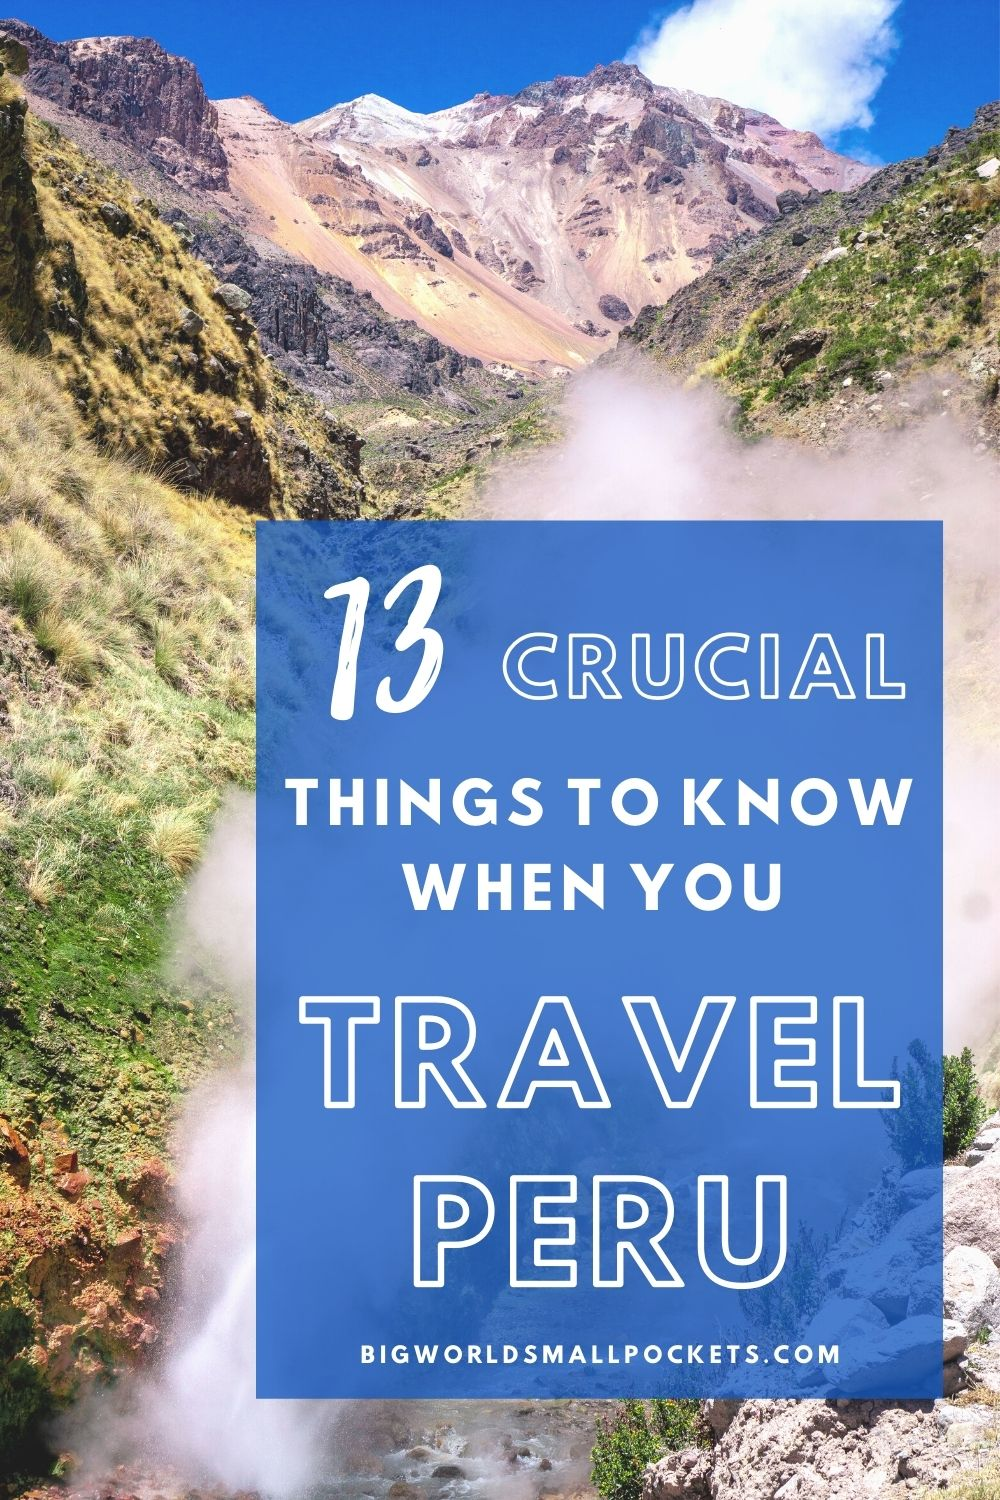 13 Crucial Things To Know When You Travel Peru